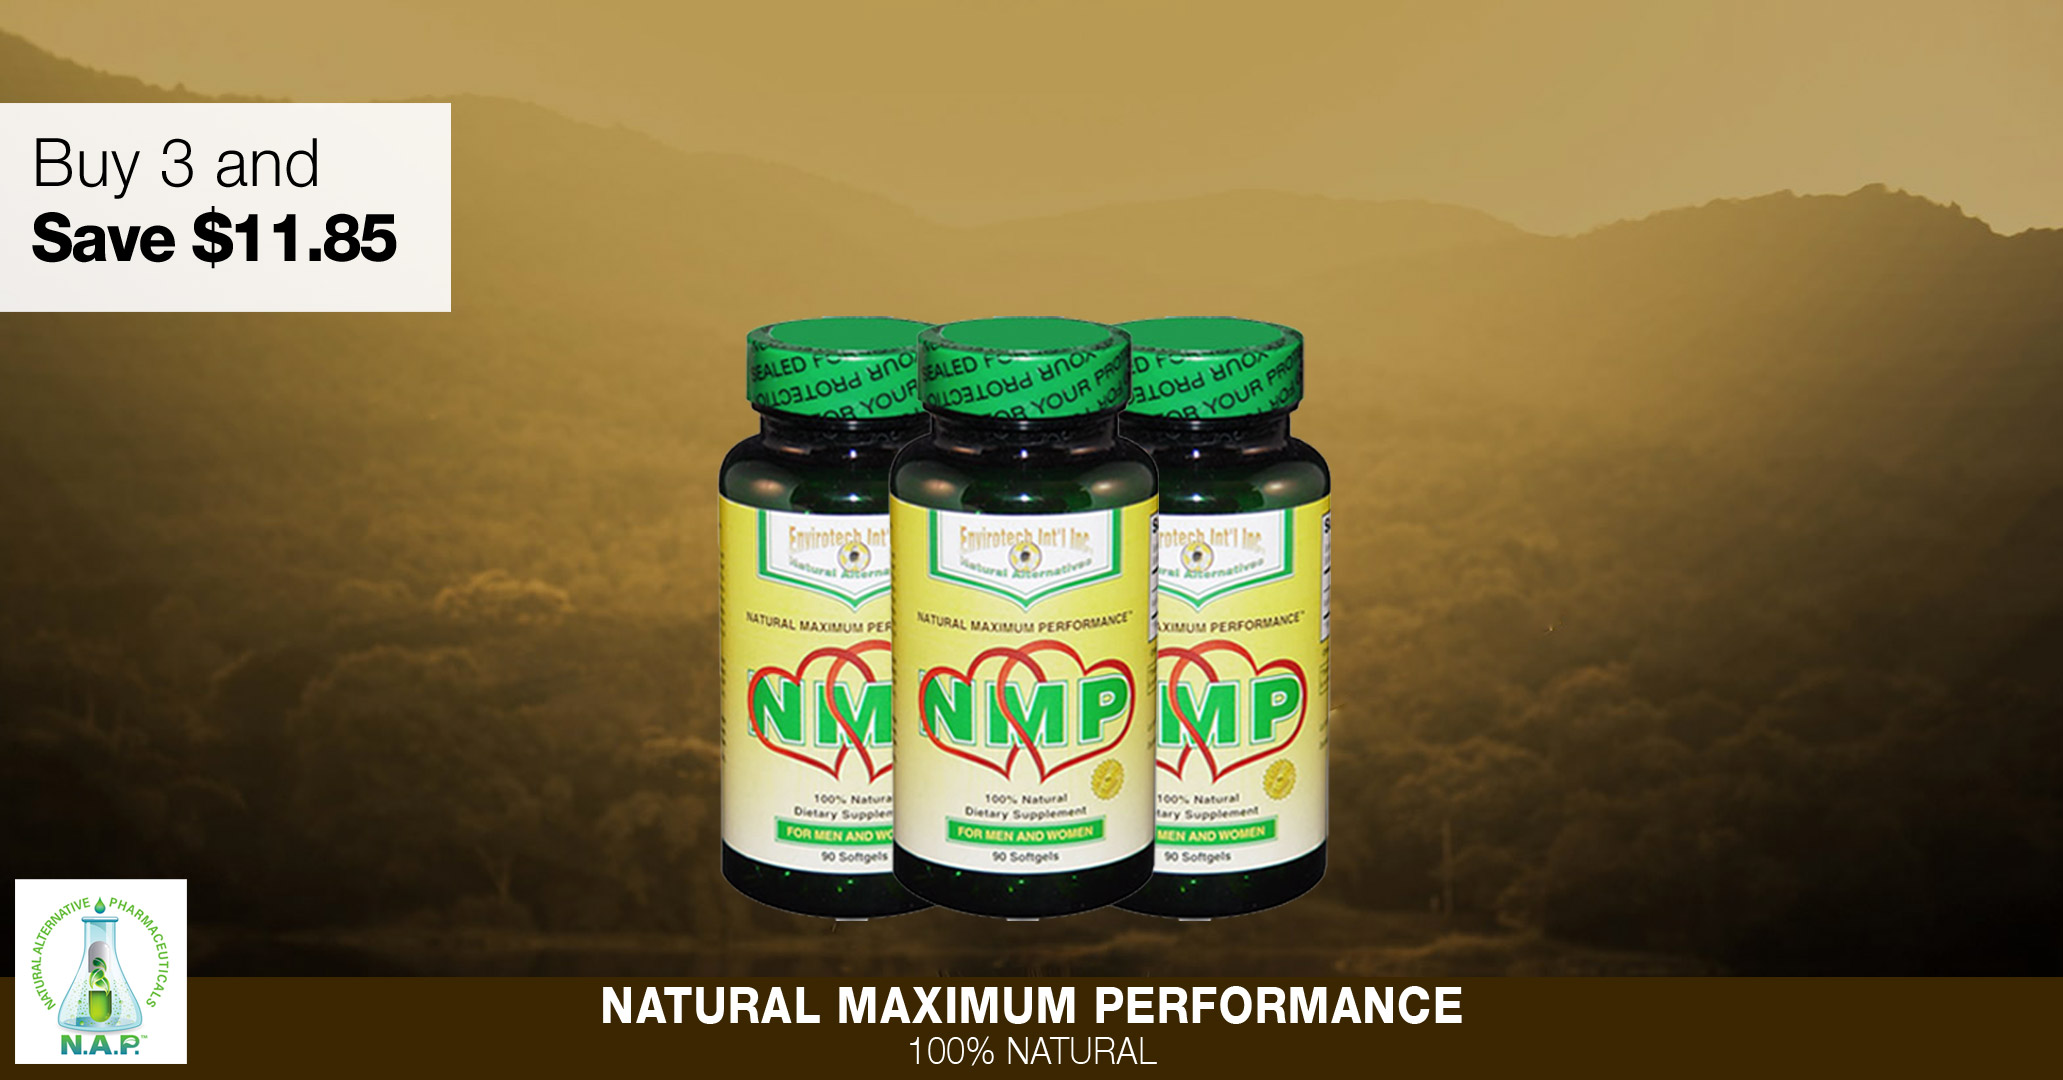 Buy 3 Bottles Of NMP Online And Save $11.85.